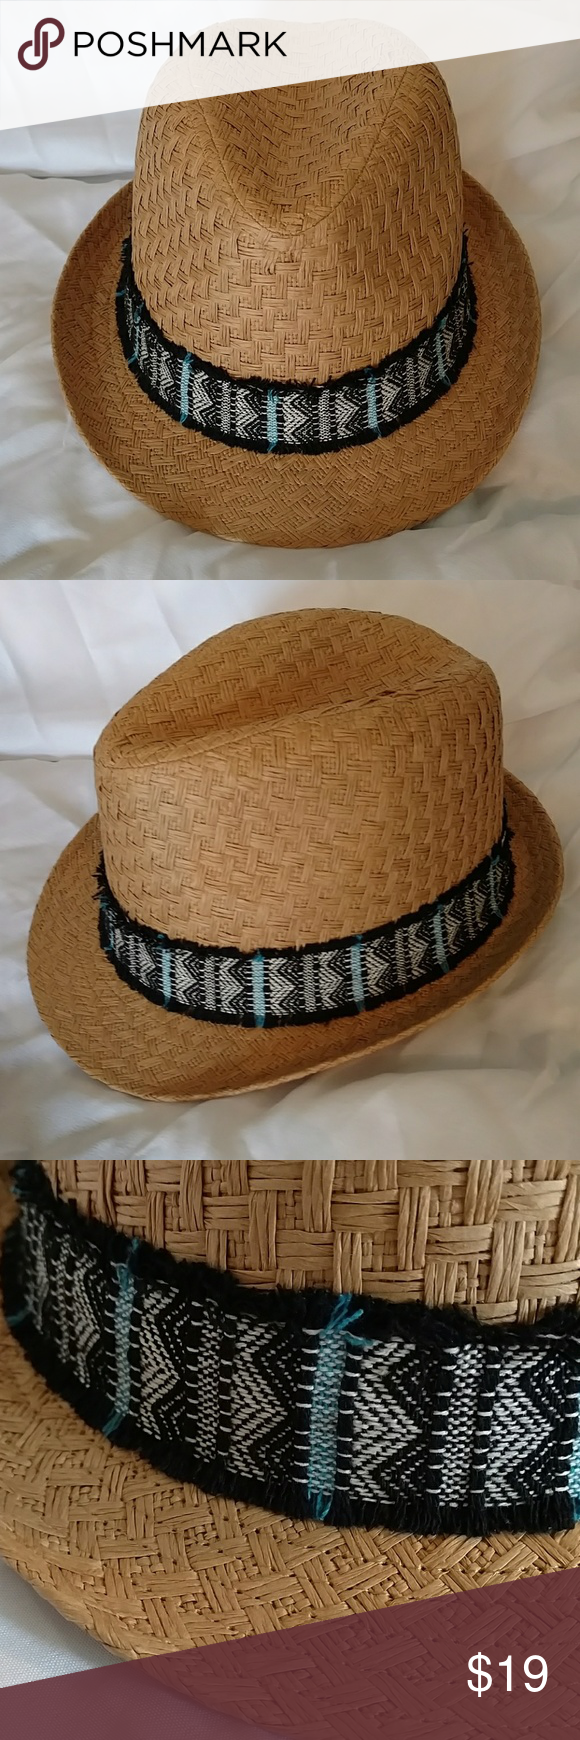 🆕💙Boho Aztec Band Straw Fedora NWOT BOHO Aztec Print Wide Band Straw Fedora. Dark Natural Woven Straw. NWOT! ONE SIZE Accessories Hats